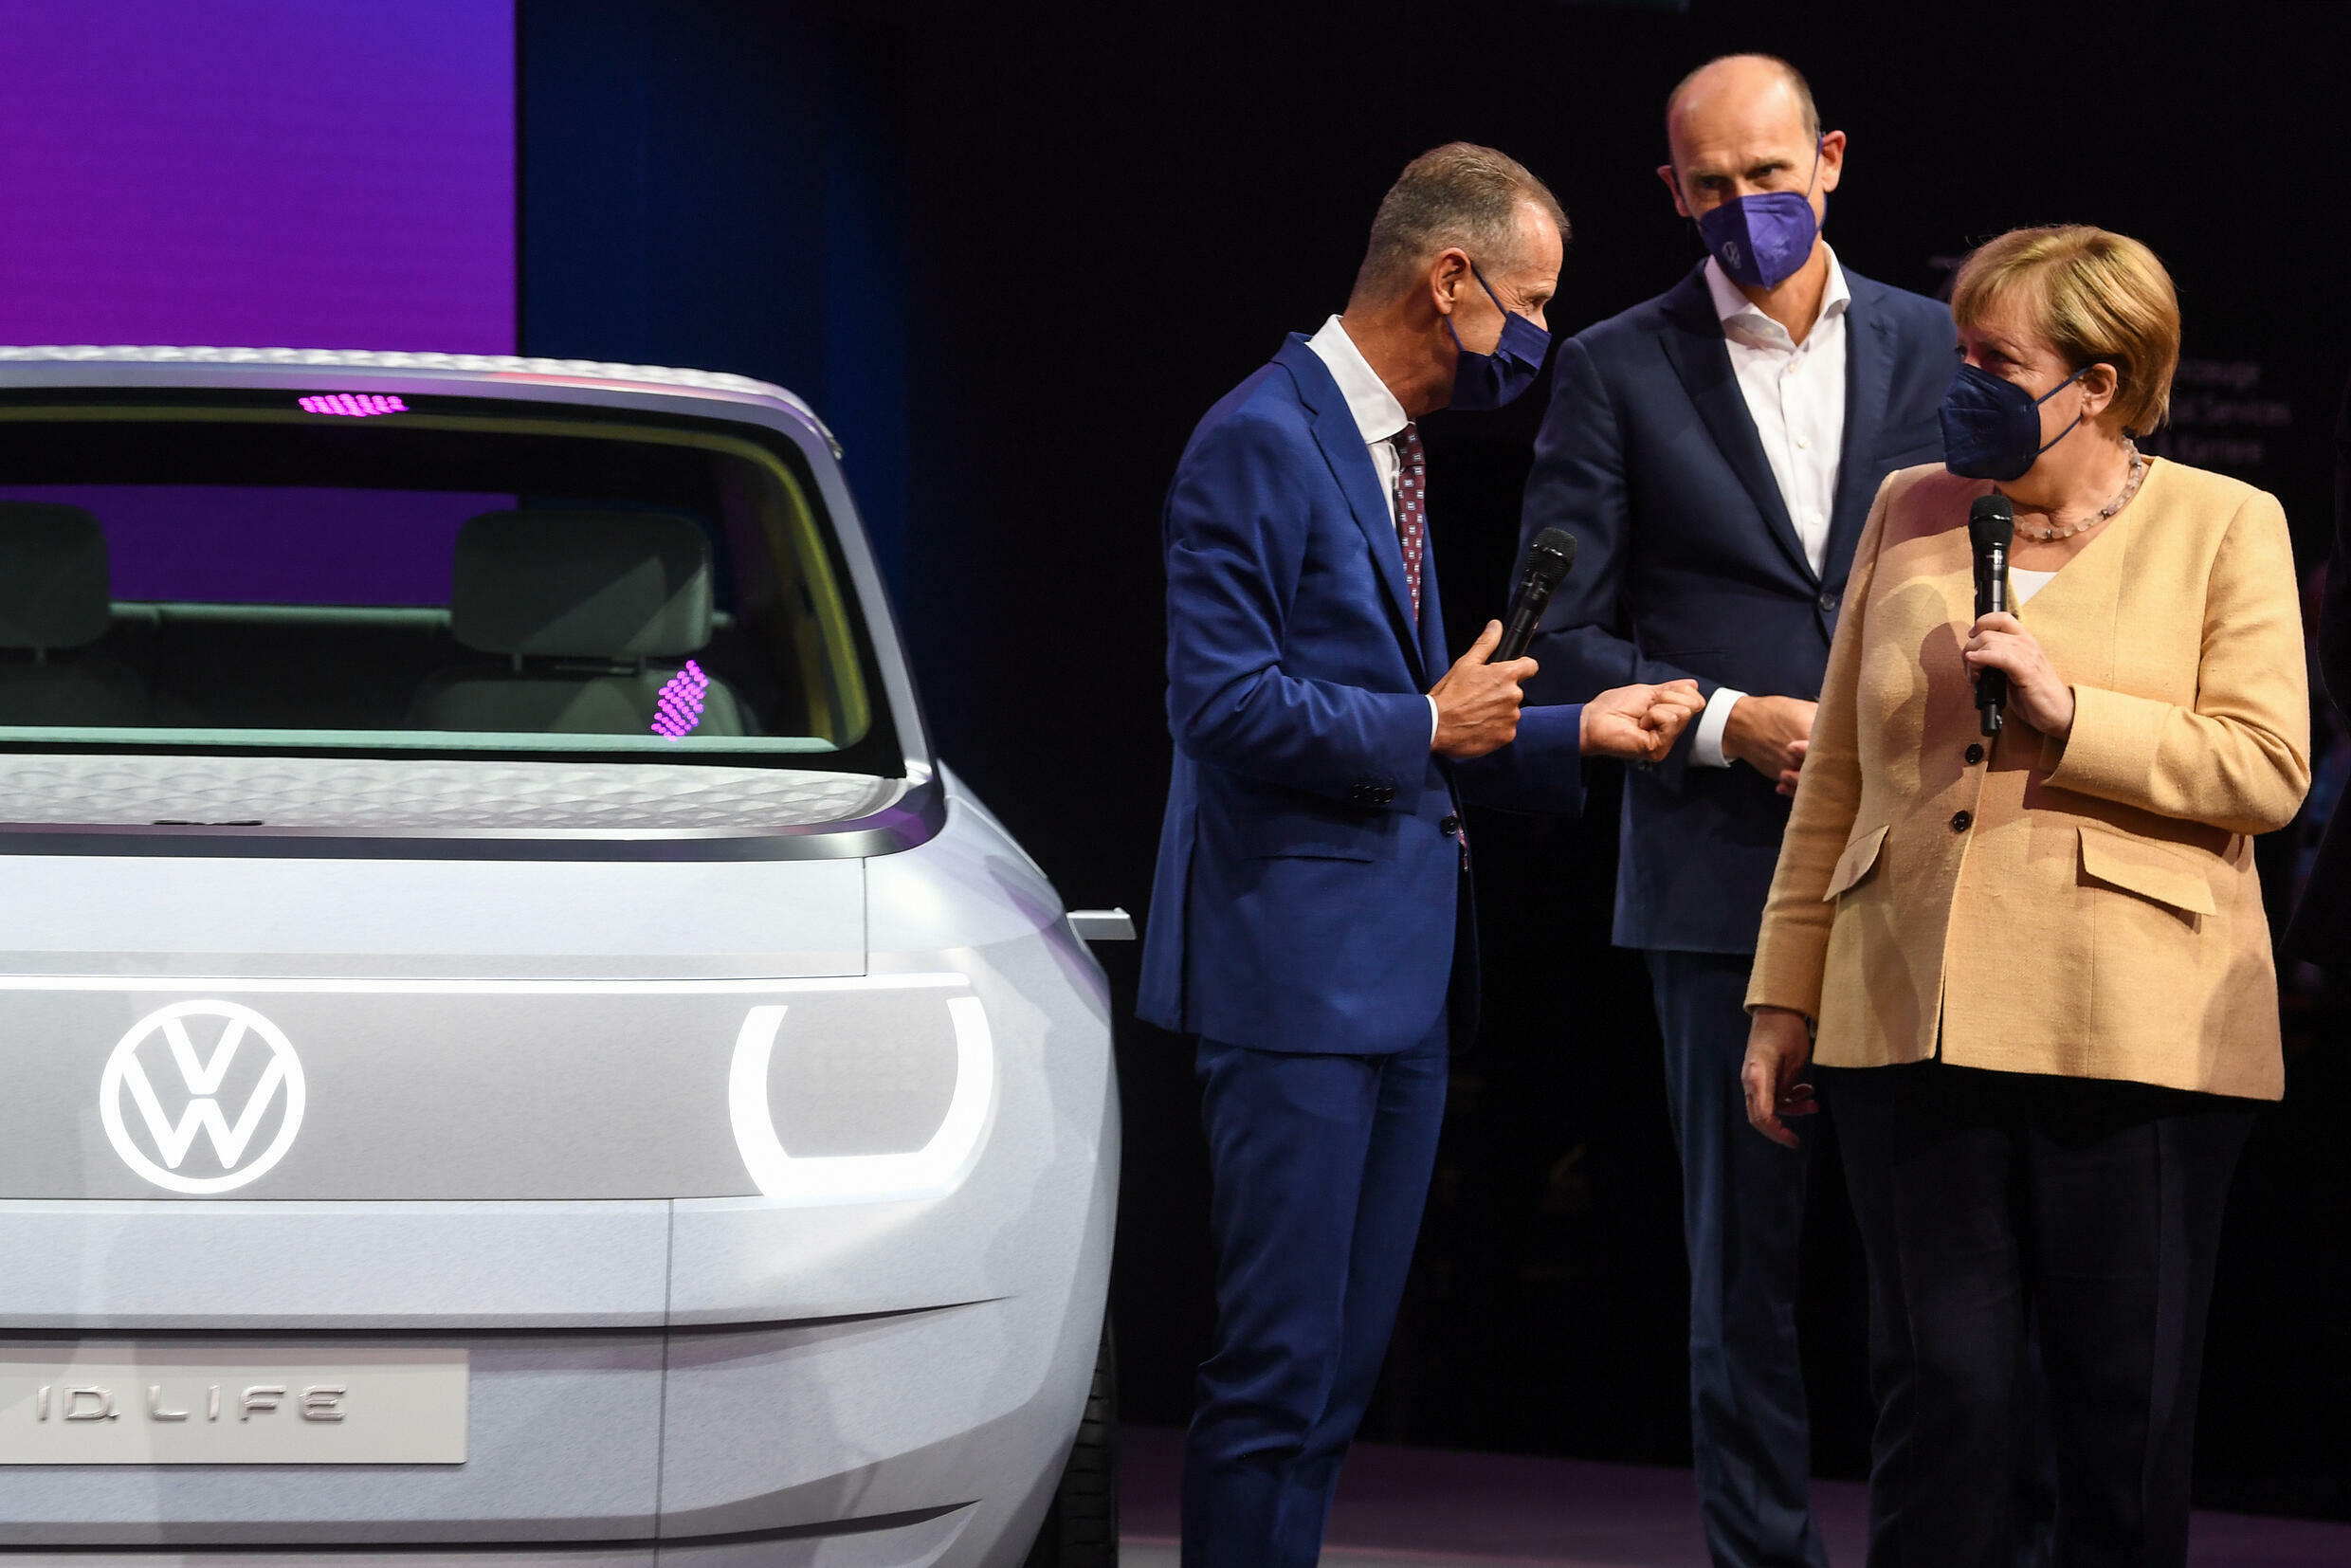 Volkswagen CEO Herbert Diess blamed Merkel's government for slowing down the electric revolution by incentivising diesel fuel for years.